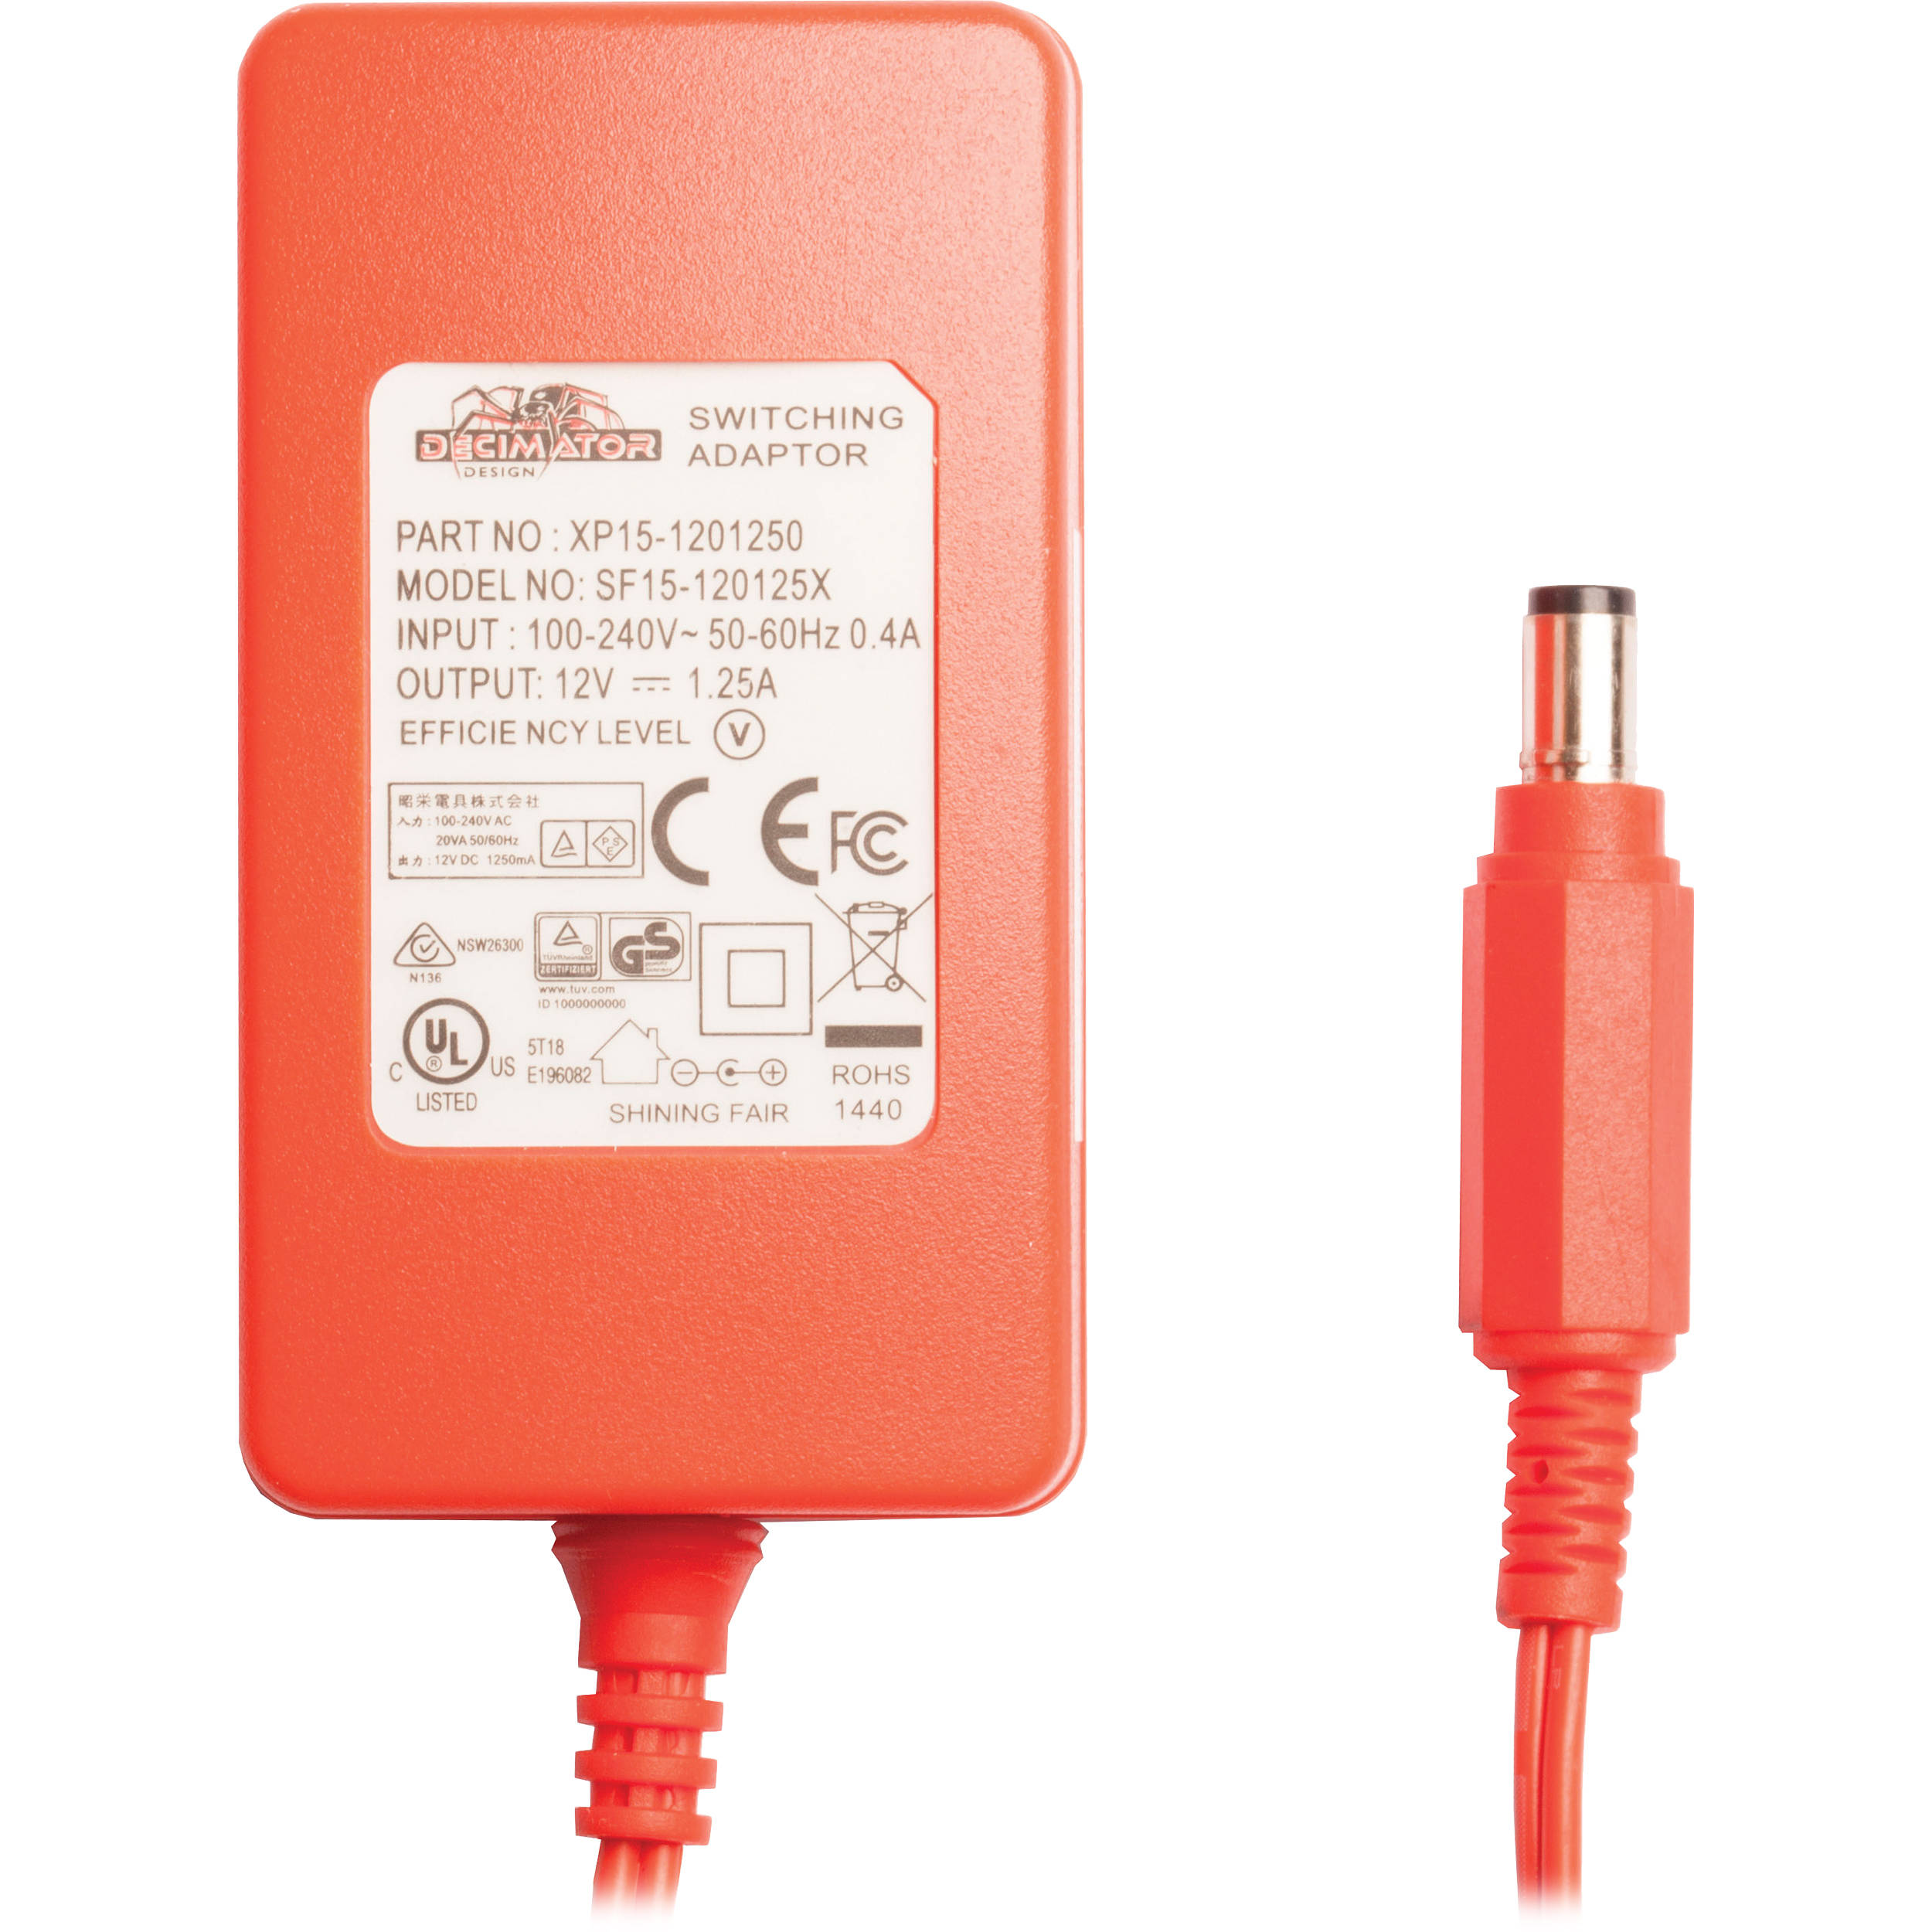 Https C Product 1208754 Reg Lipo Balance Charger Ac Input Europe Products Classic Army Decimator Pwr 12vpl Power Pack 12v 1091836